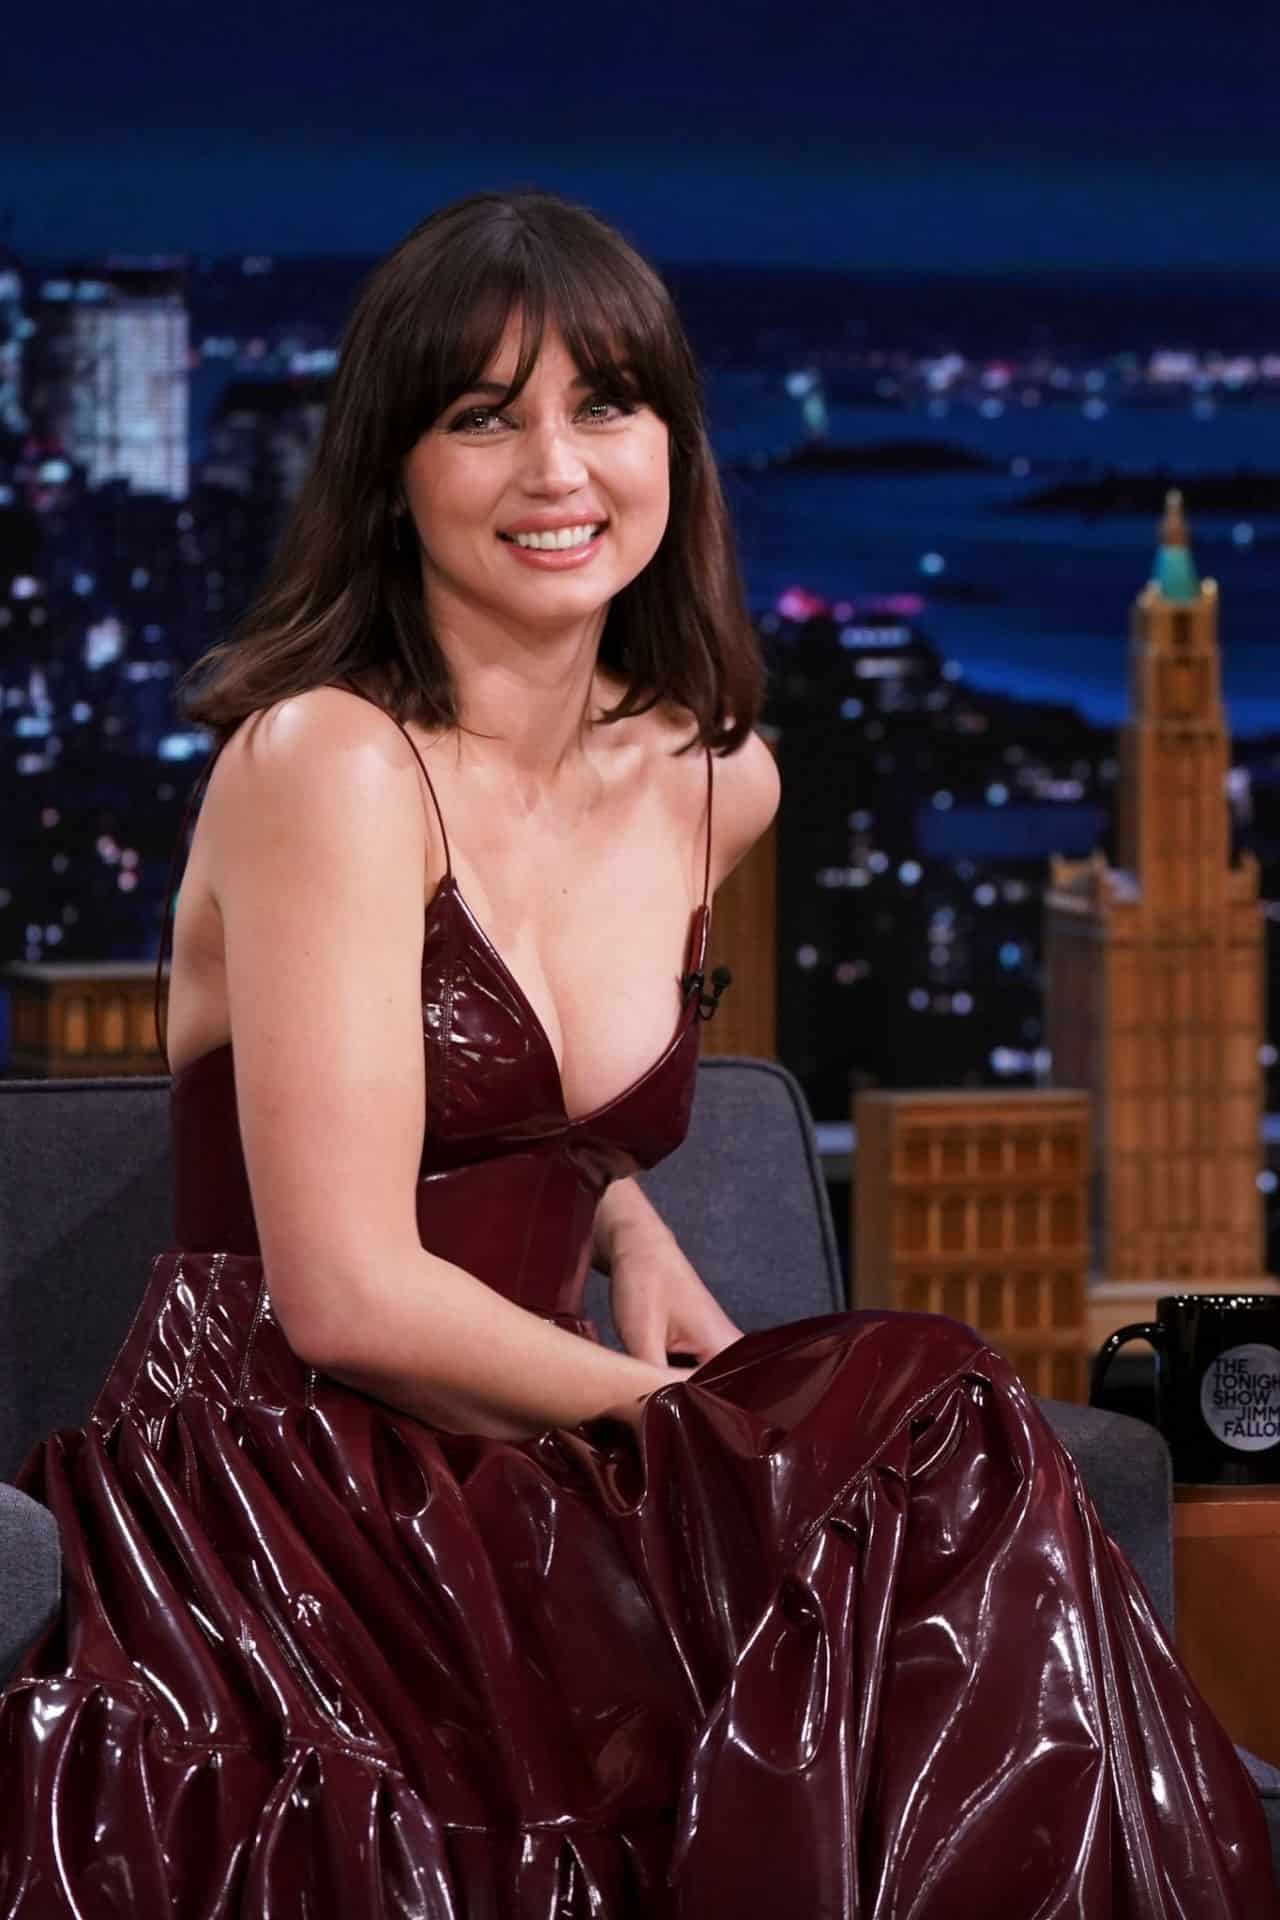 Ana de Armas Attends The Tonight Show Starring Jimmy Fallon in NYC